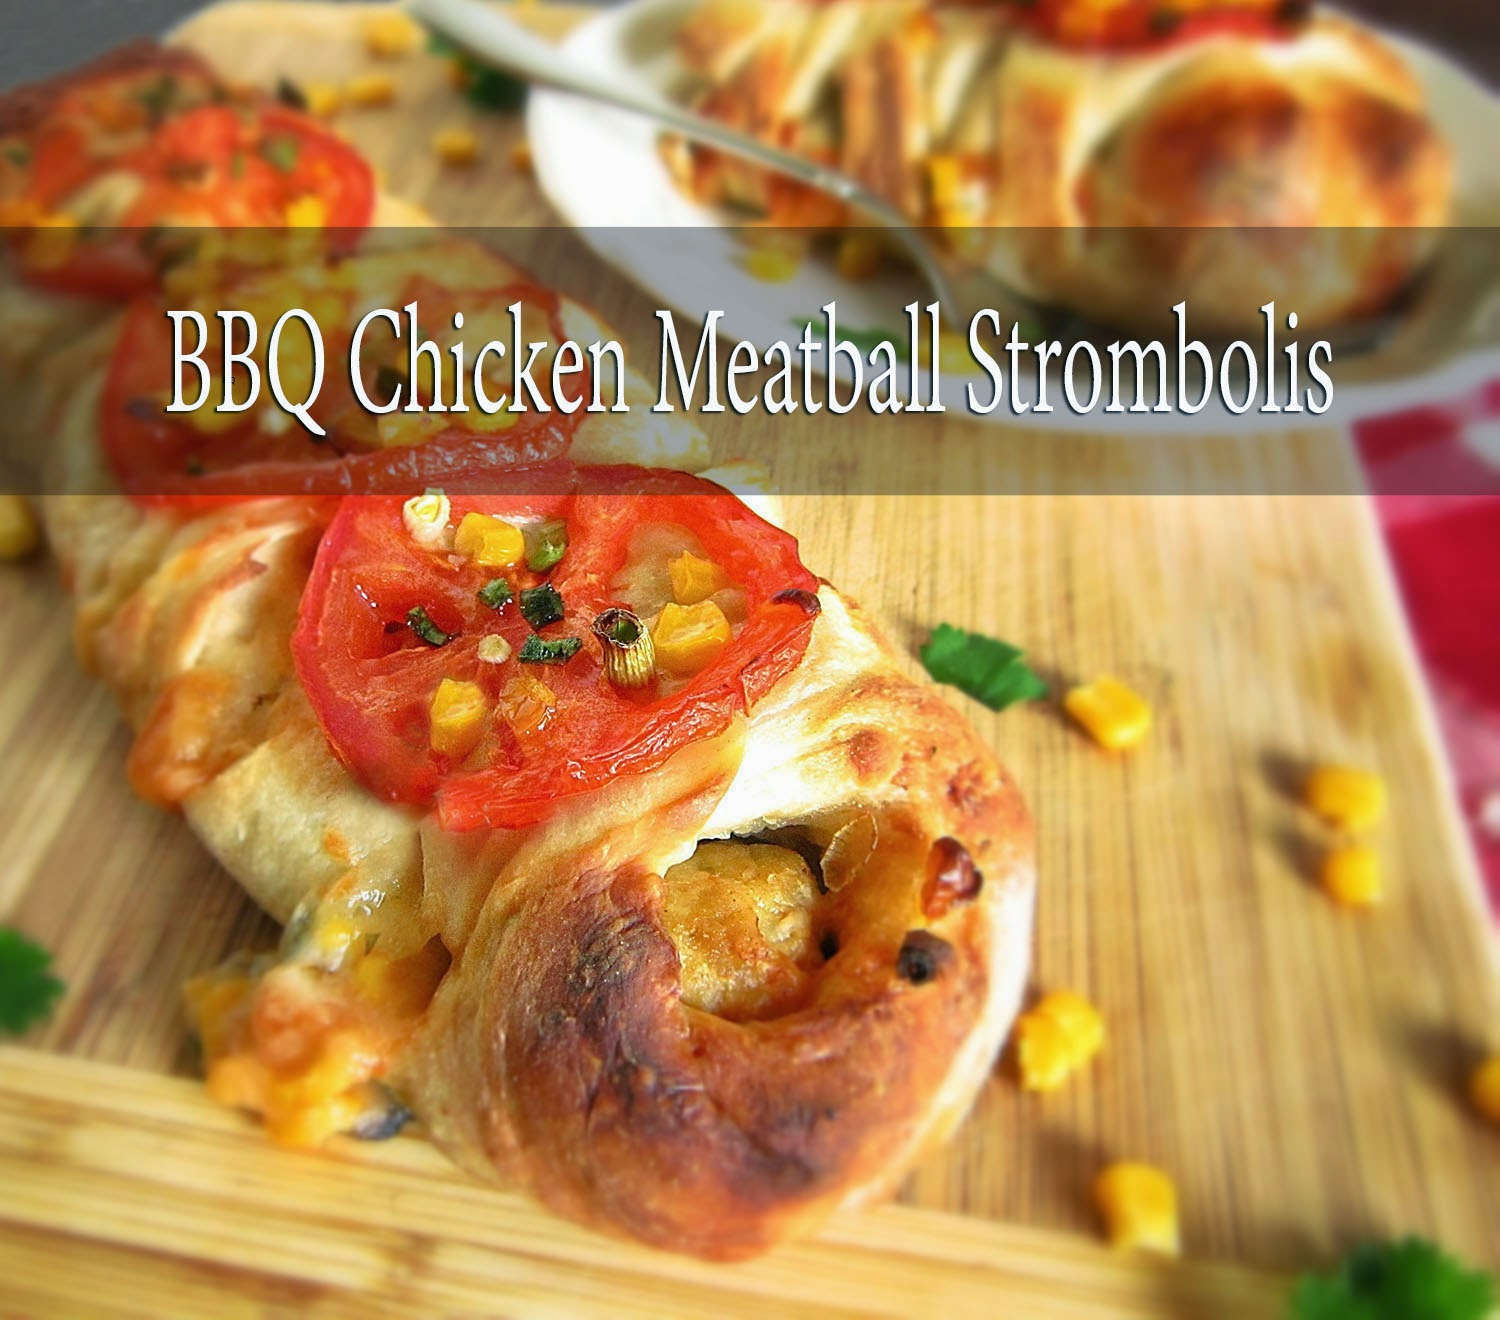 ... , Music and More!: BBQ Chicken Meatball Strombolis #WRALSmartShopper